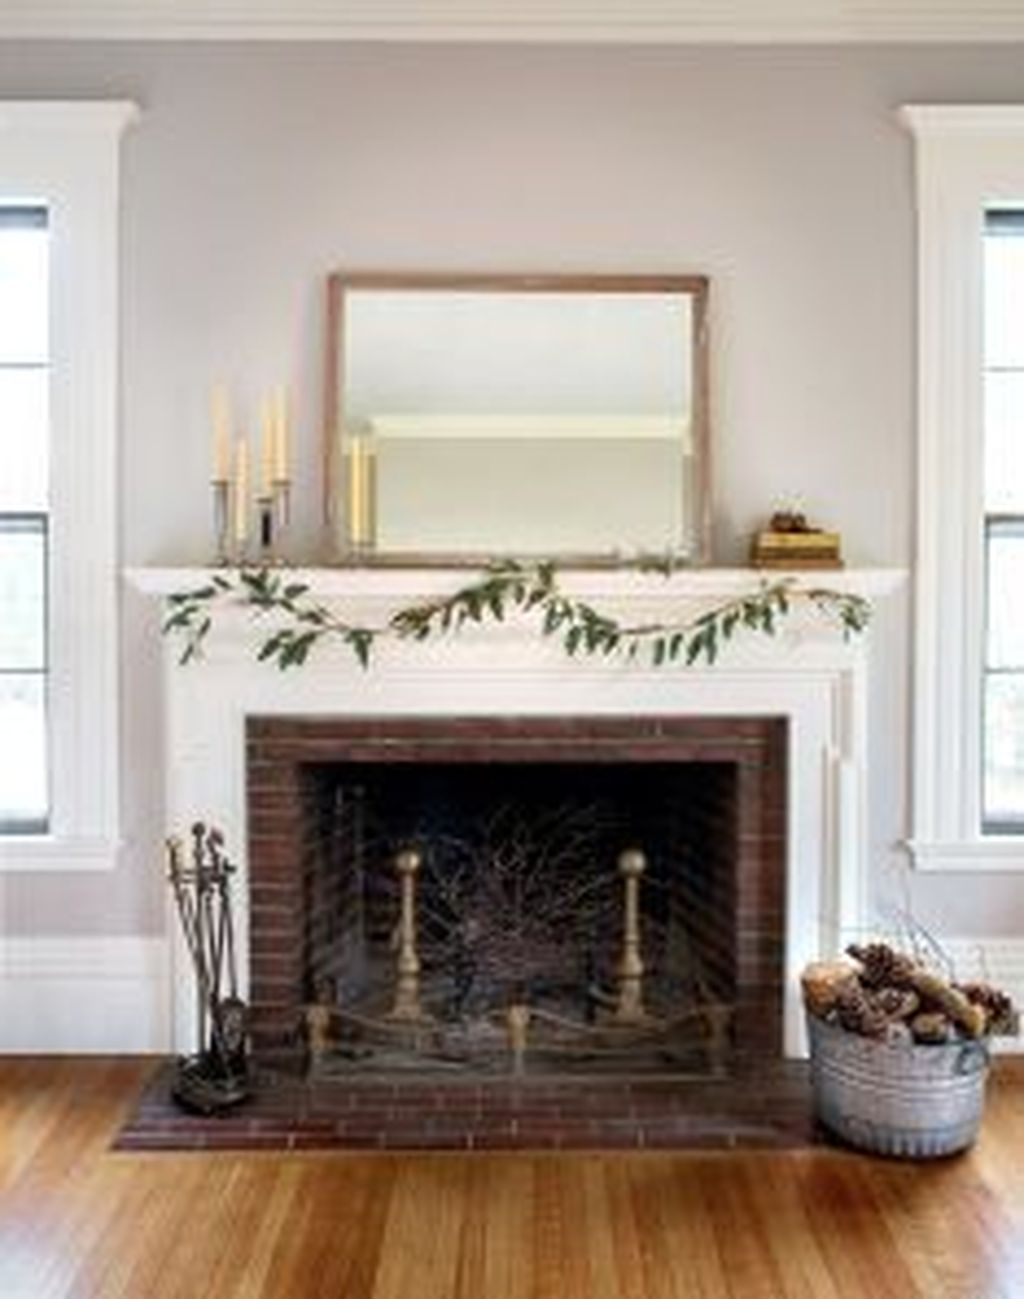 Popular Minimalist Winter Decor Ideas You Should Try 24